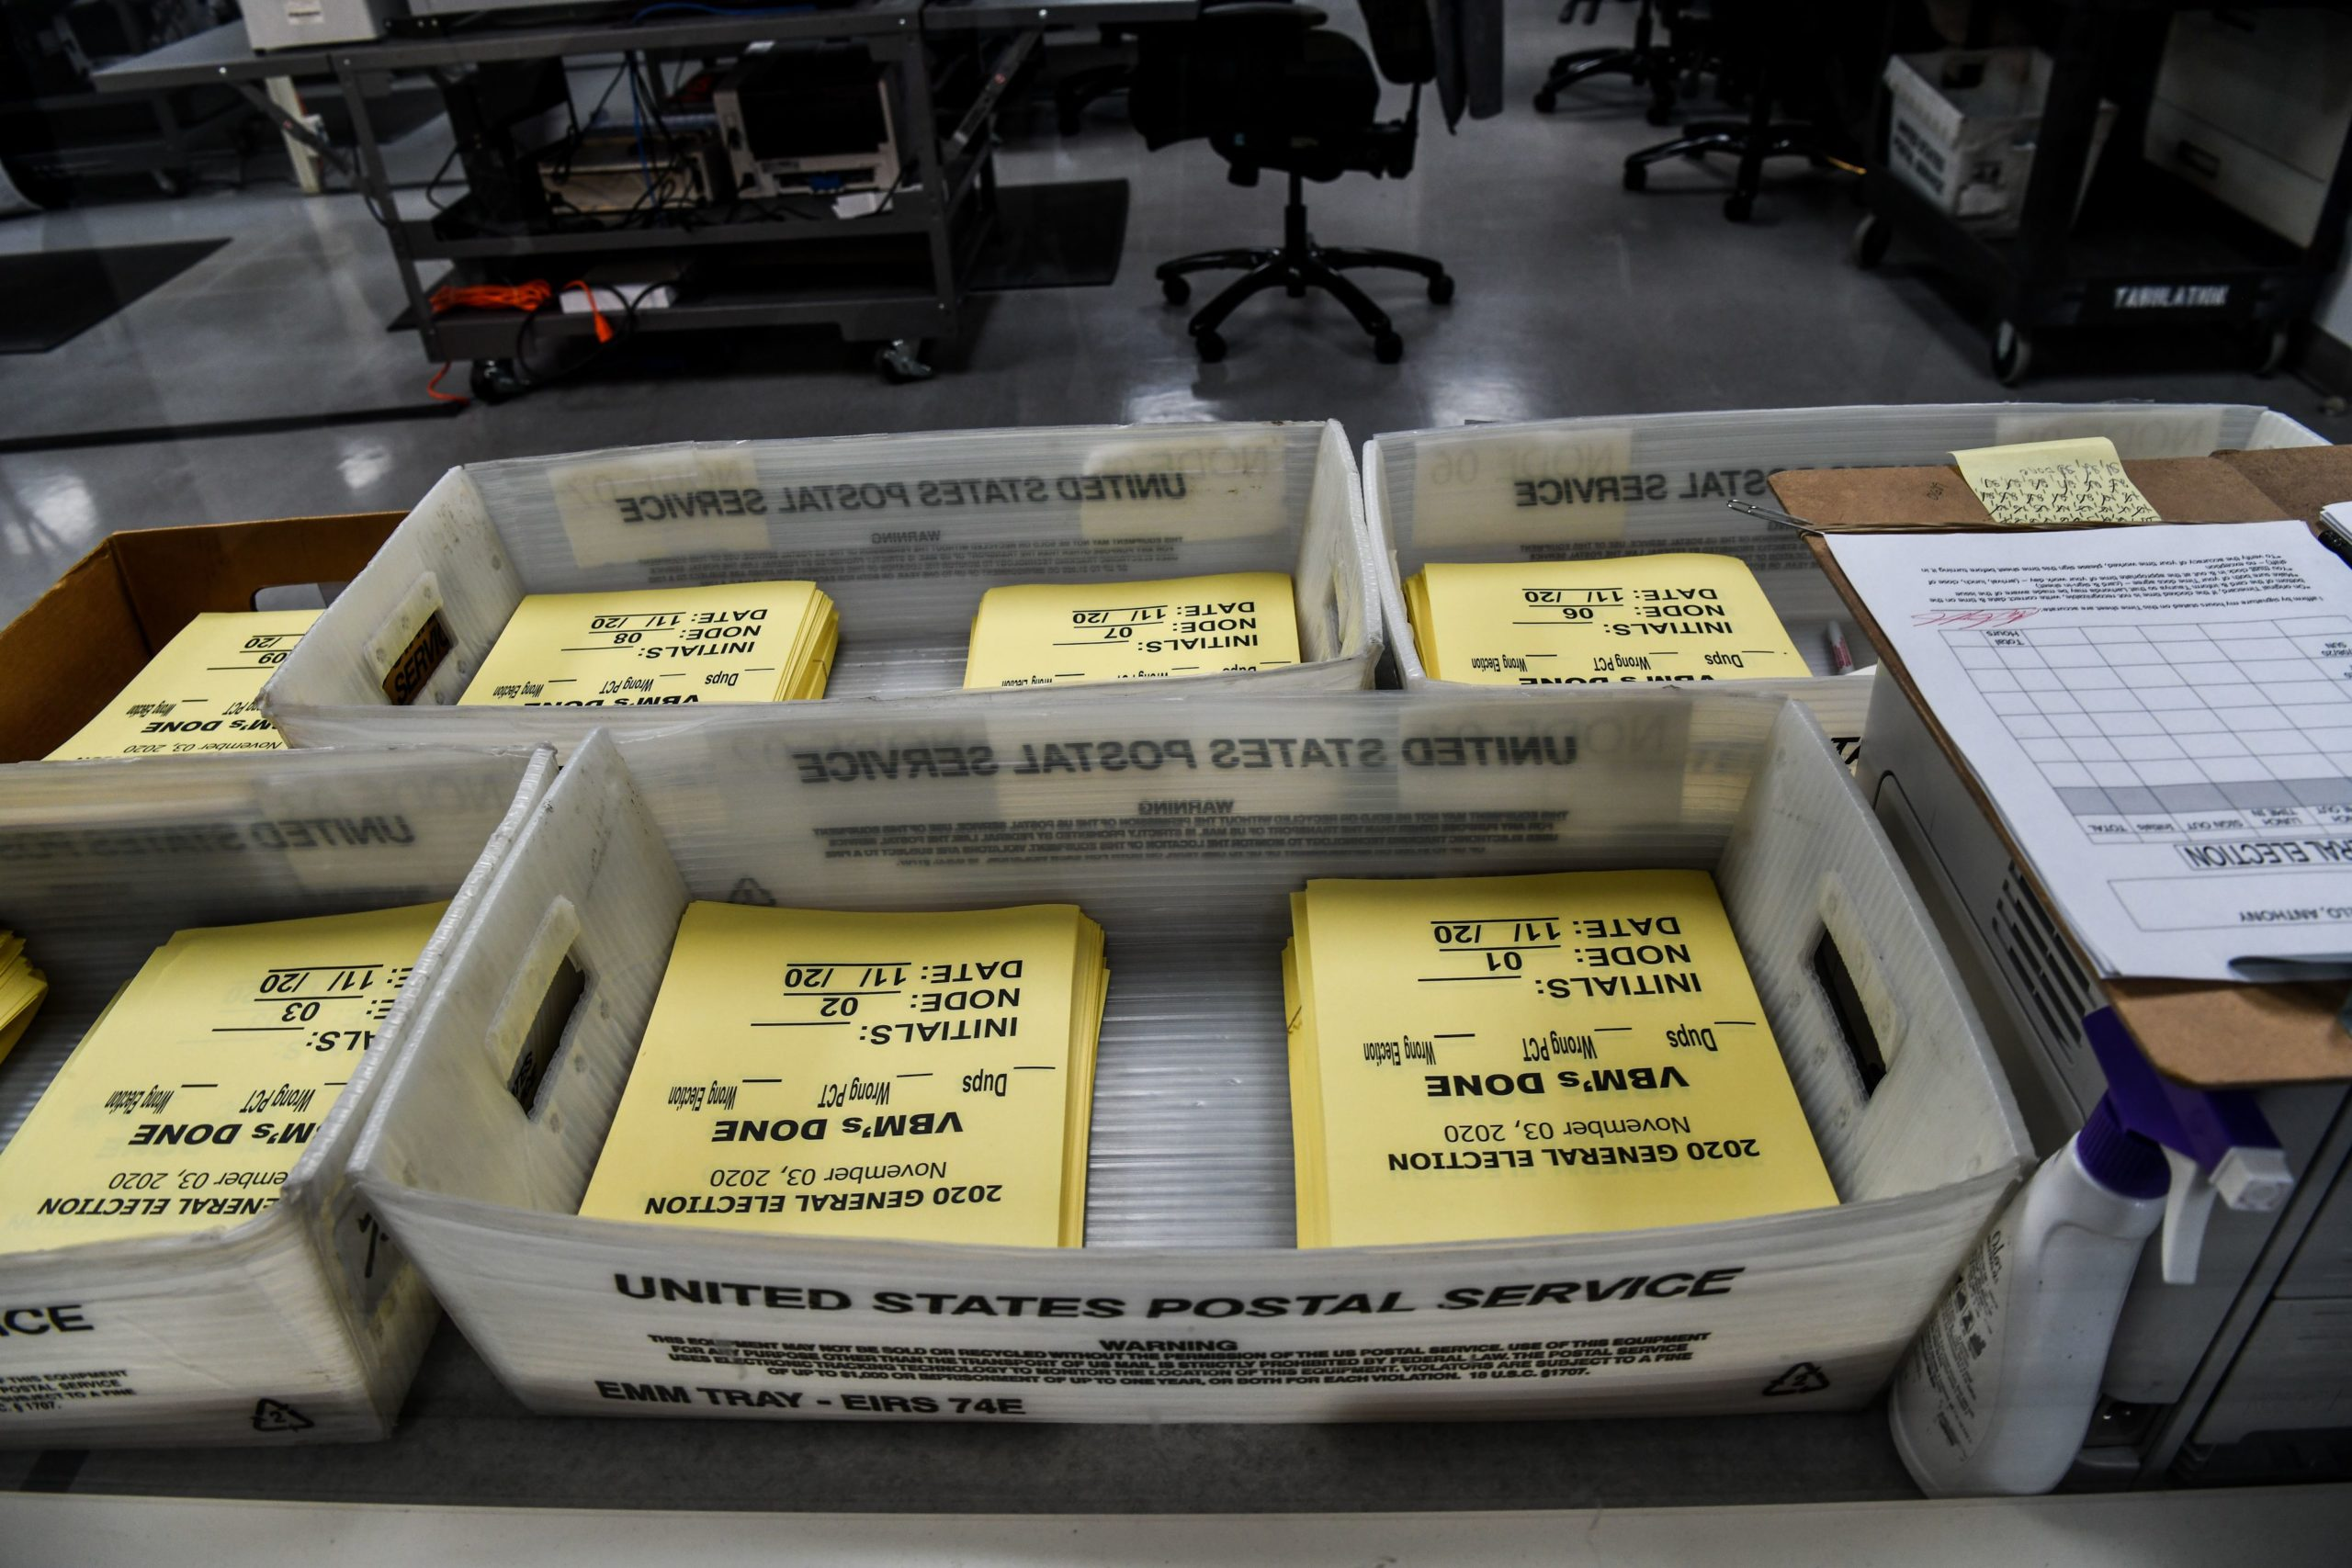 Paperwork for sorting ballots is seen during the vote-by-mail ballot scanning process at the election department in Miami, Florida on Nov. 3. (Chandan Khanna/AFP via Getty Images)